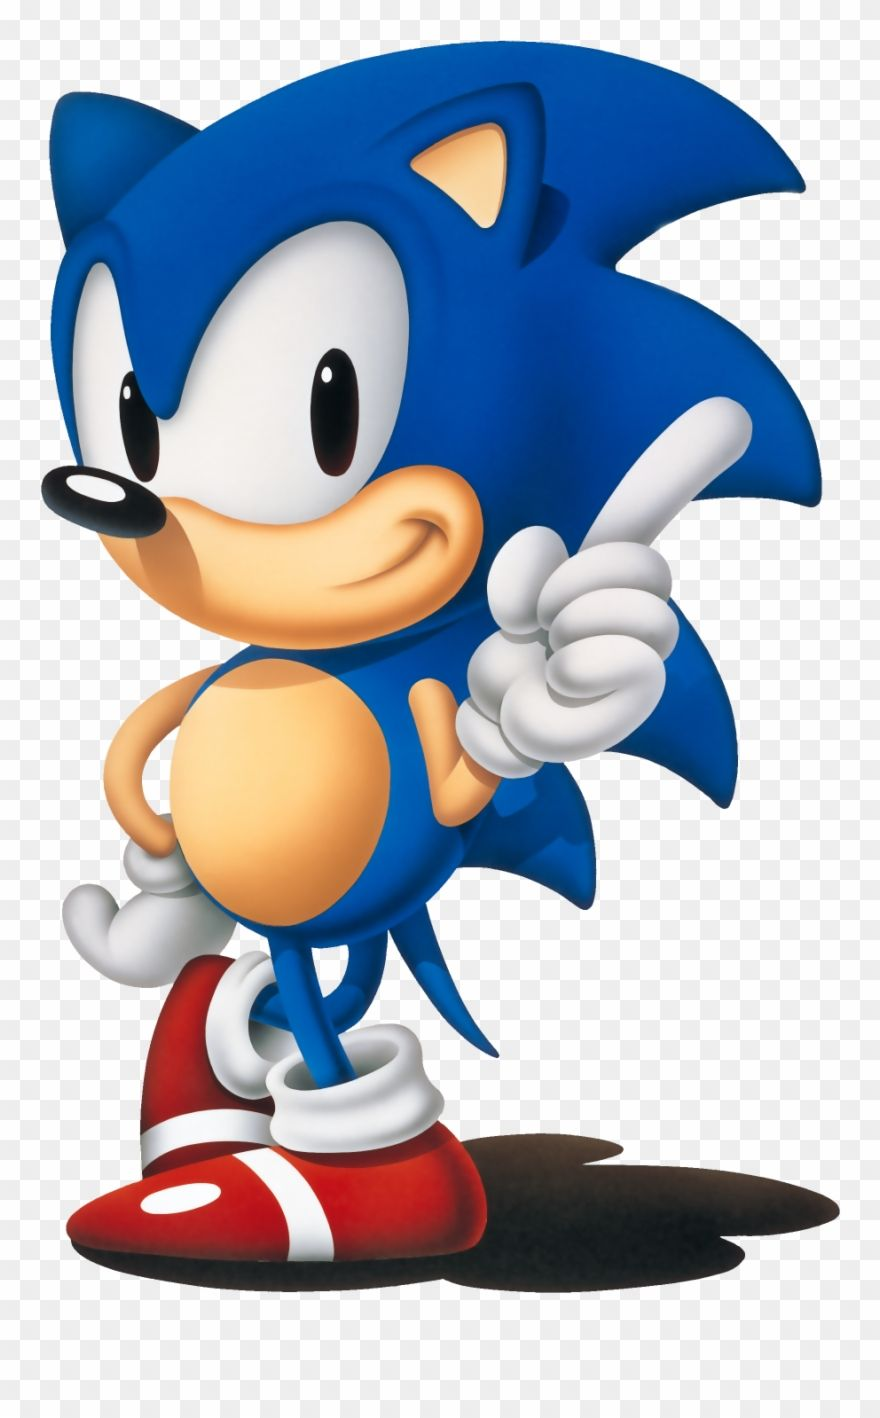 Sonic The Hedgehog 1991 Png Clipart Sonic Classic Sonic Sonic The Hedgehog